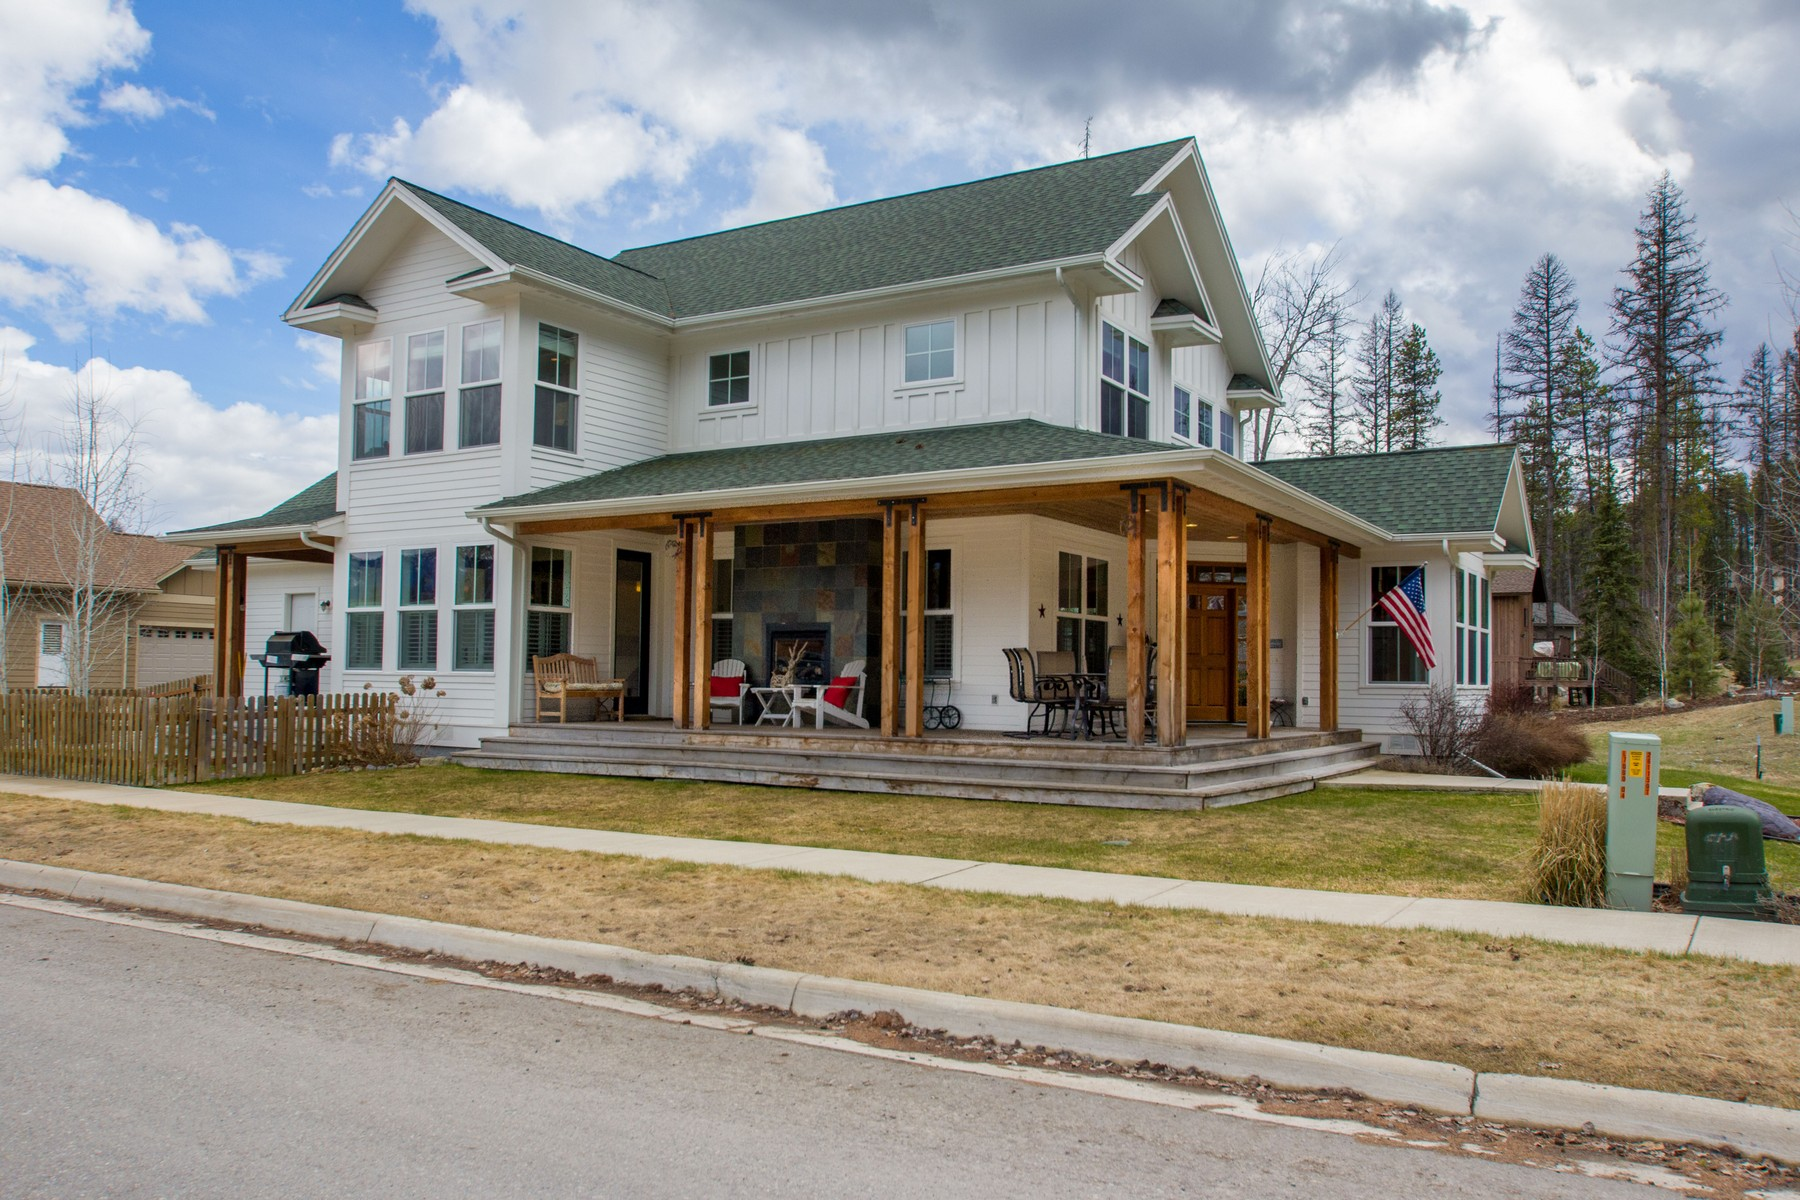 Single Family Home for Sale at 303 Stumptown Loop, Whitefish, MT 59937 303 Stumptown Loop Whitefish, Montana 59937 United States